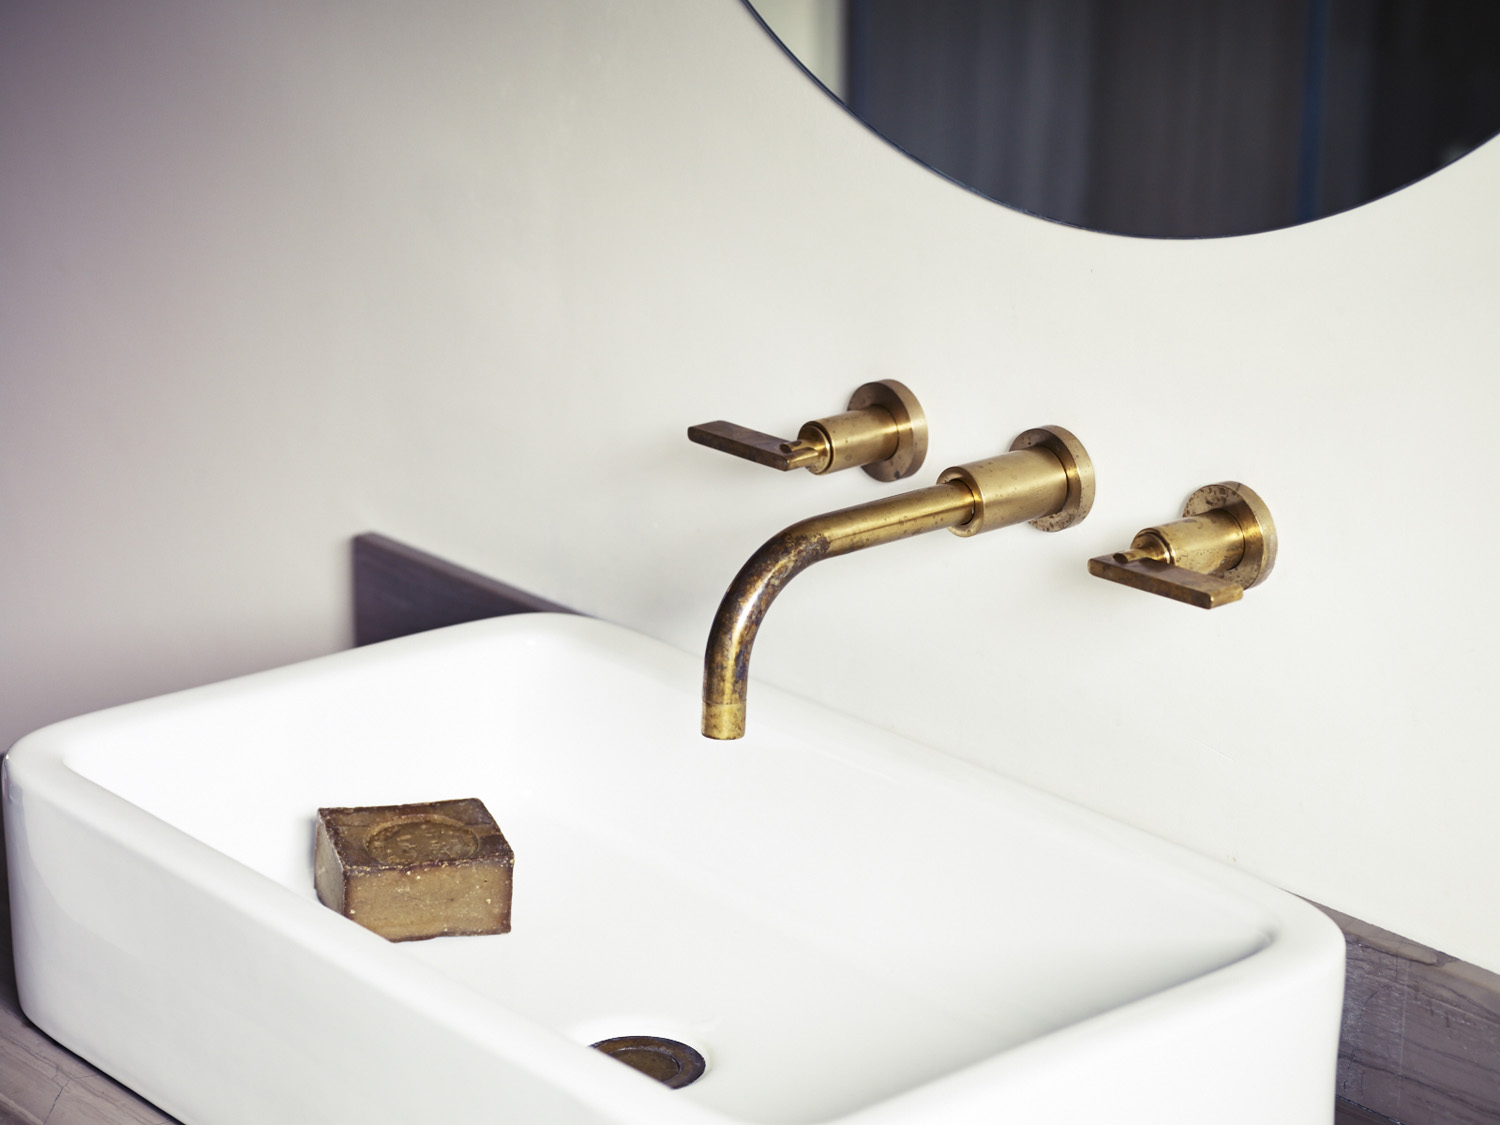 Wall mounted brass taps by Studio Ore